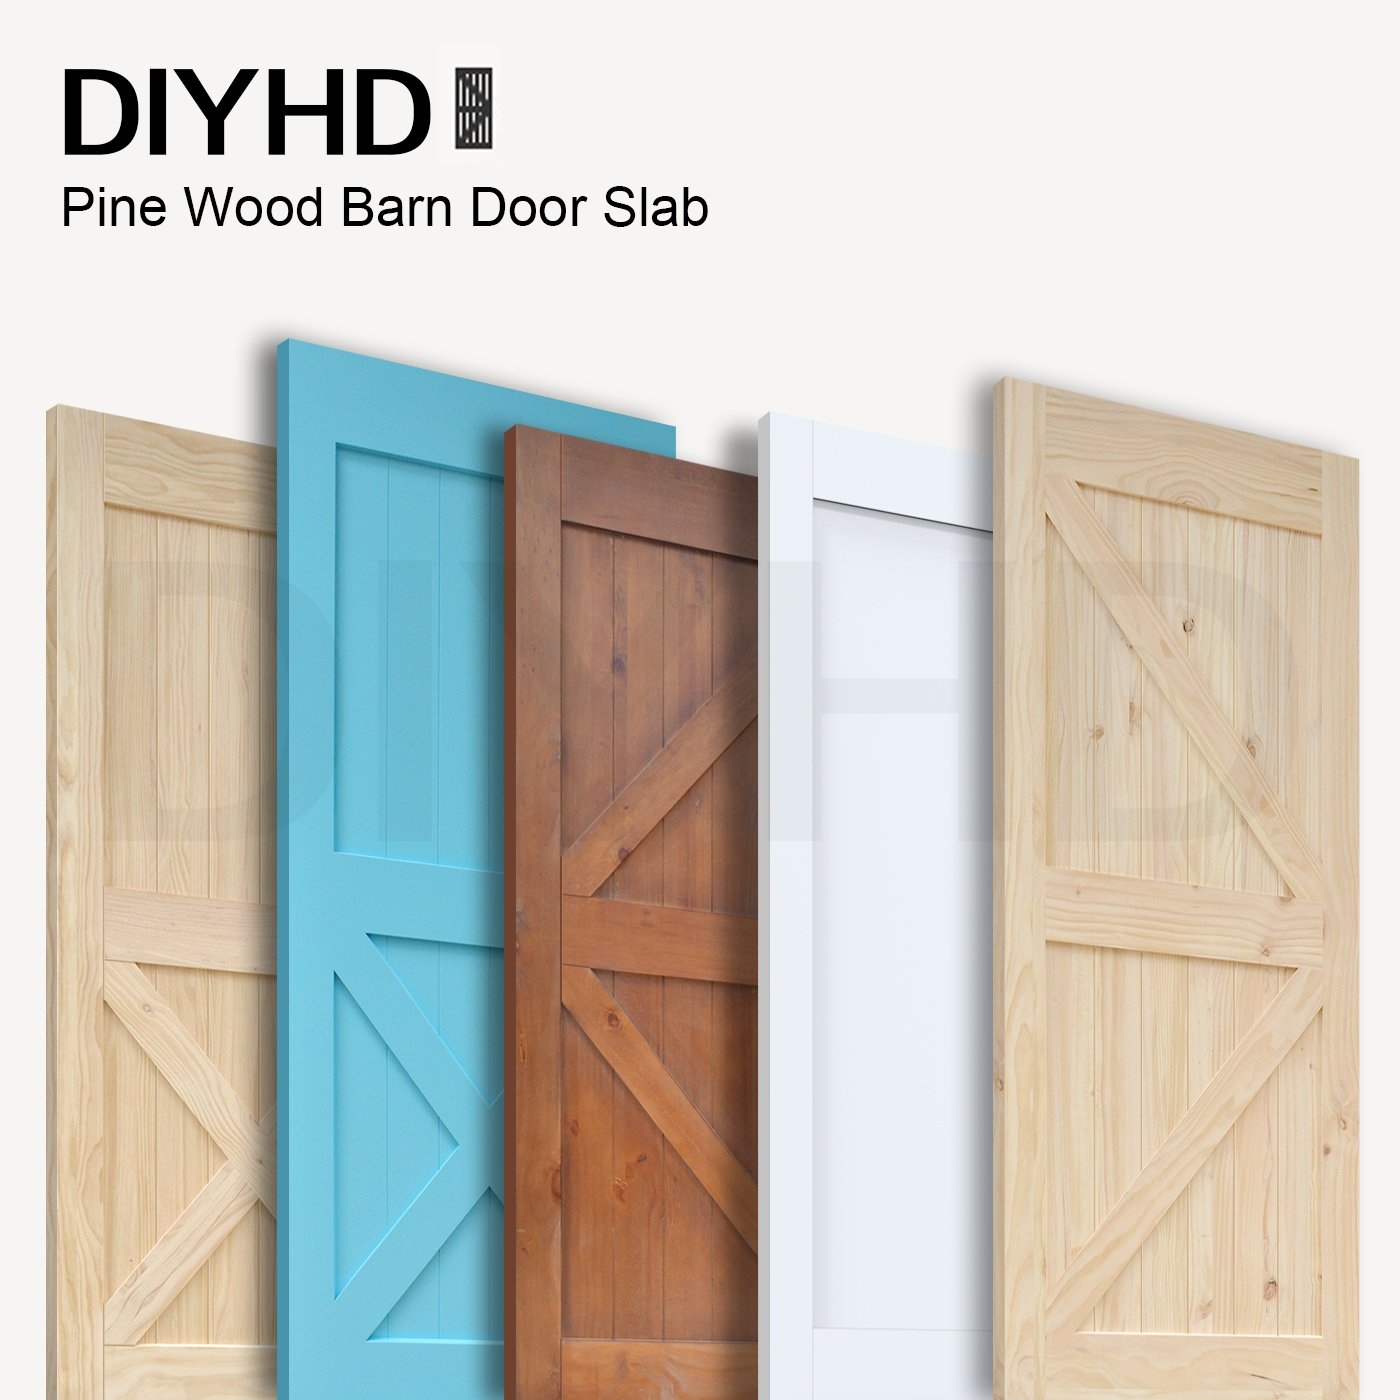 Amazon.com 38 in84 in Pine Knotty Sliding Barn Door Slab Two-side X Shape Barn Wood Door Panel Blue Painted Sliding Barn Door Home Improvement  sc 1 st  Amazon.com & Amazon.com: 38 in84 in Pine Knotty Sliding Barn Door Slab Two-side X ...